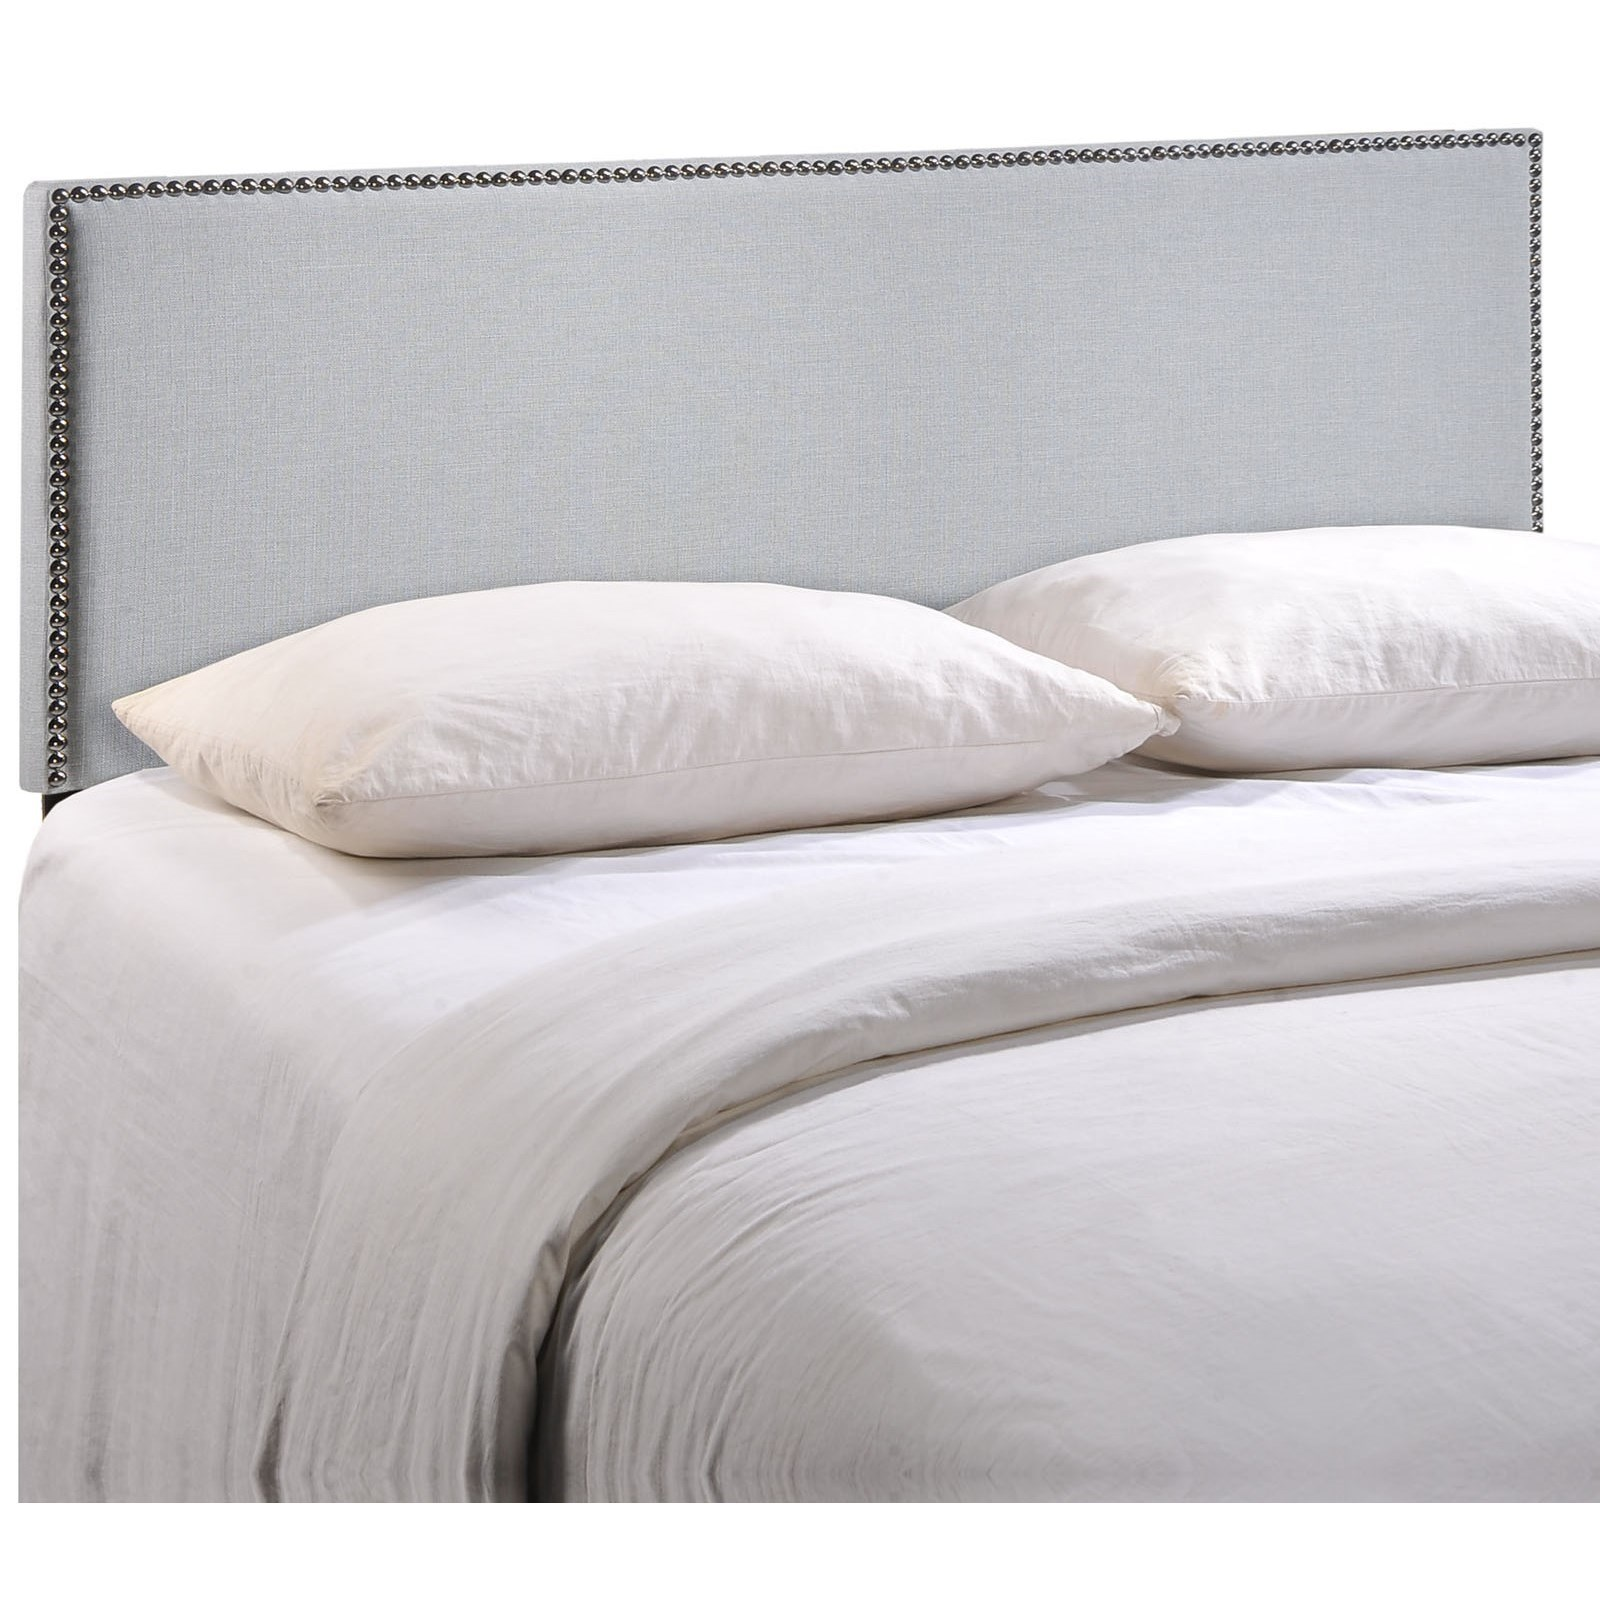 Region Full Nailhead Upholstered Headboard by Modway at Value City Furniture